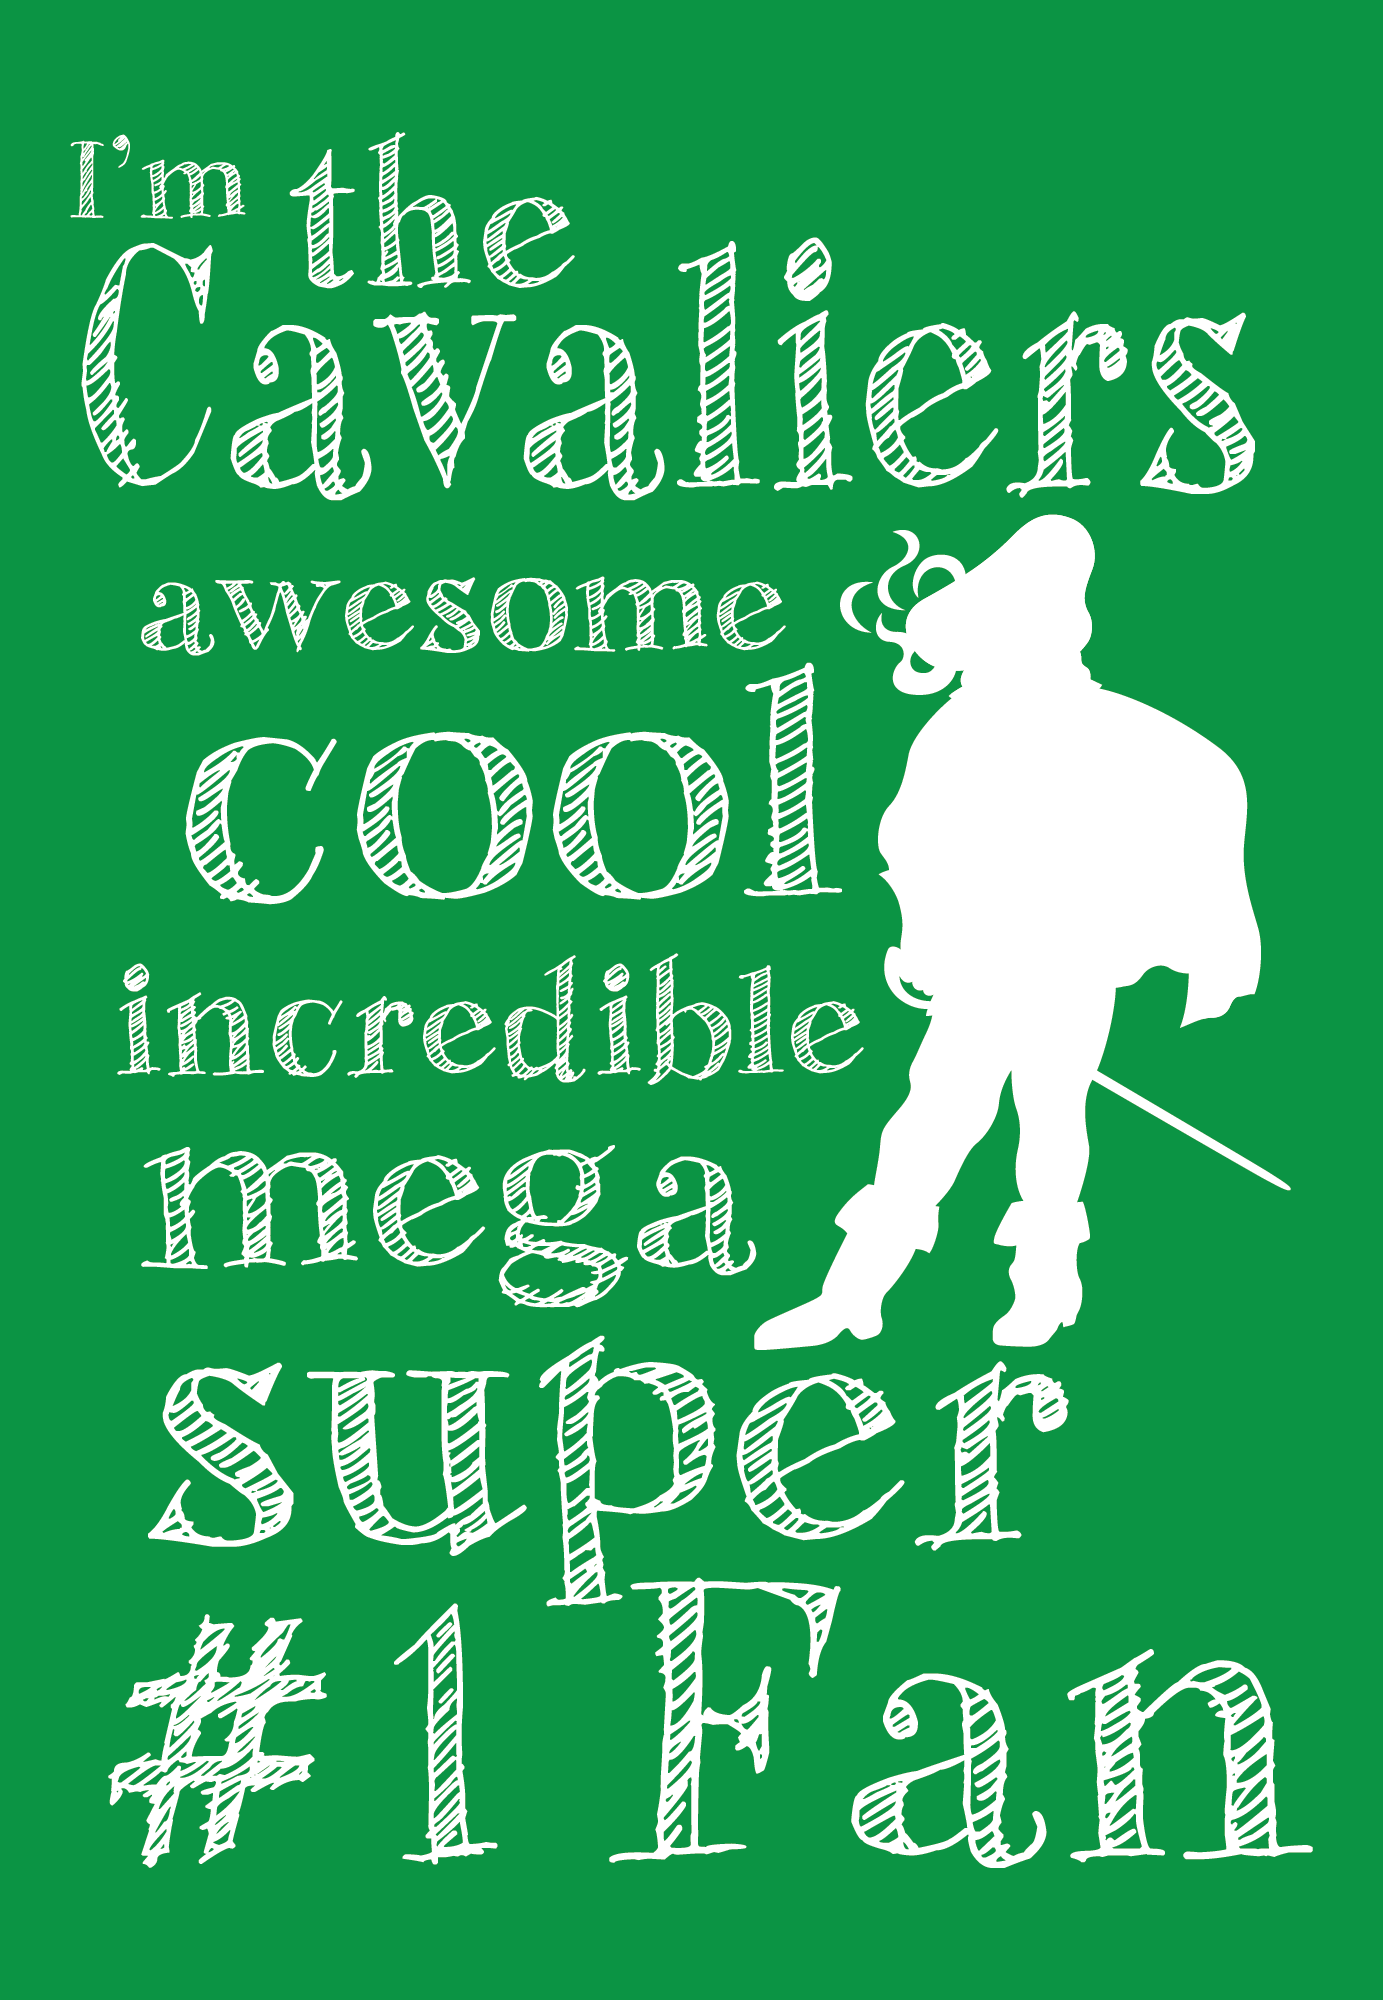 Kids Cavalier Fan T (KELLY)